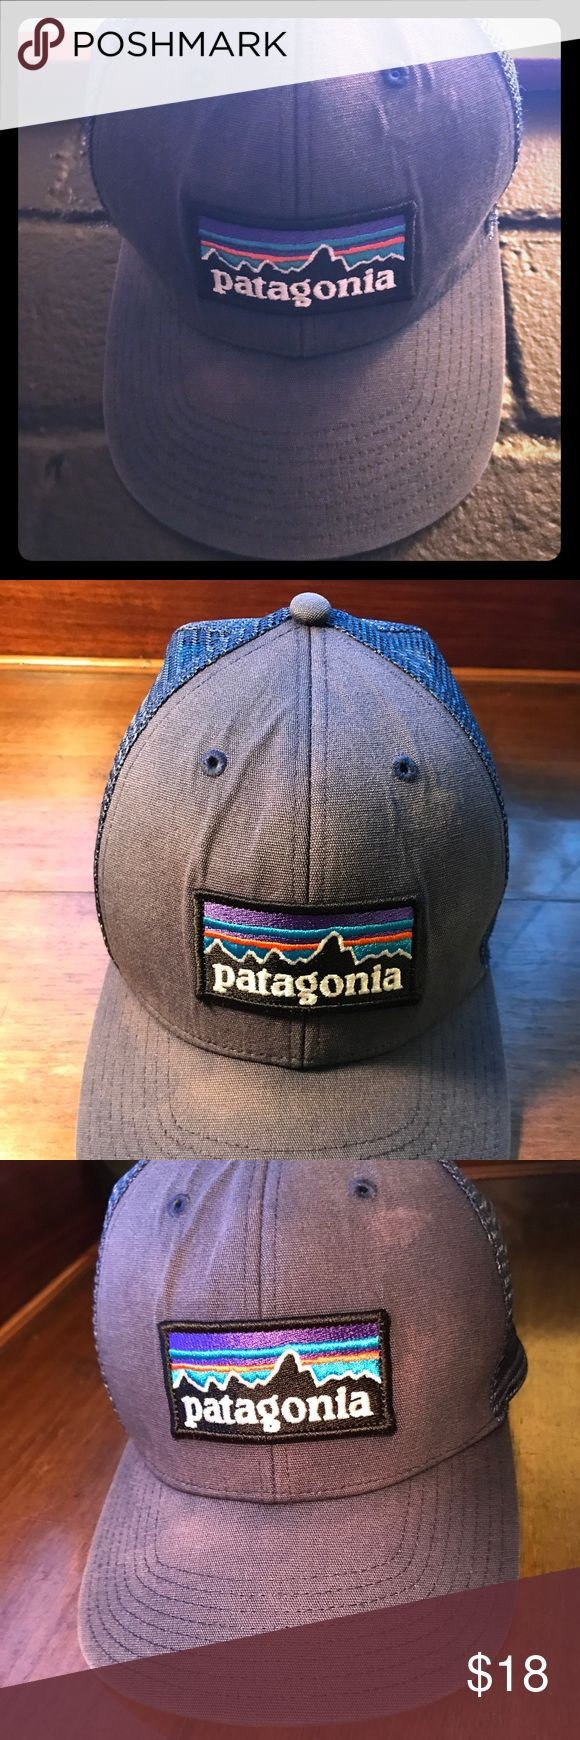 Patagonia Trucker Snapback Hat Patagonia trucker snapback. Mesh section is super lightweight. See photos for two small spots that are a tiny bit lighter than the rest. The main panel has a slightly melange effect so I keep changing my mind about whether it's supposed to be like that. I ramped up the shadowing in the last photo to show you what I mean, but irl it doesn't stand out that much. In any case, it blends in well. Lmk if you have questions! Patagonia Accessories Hats